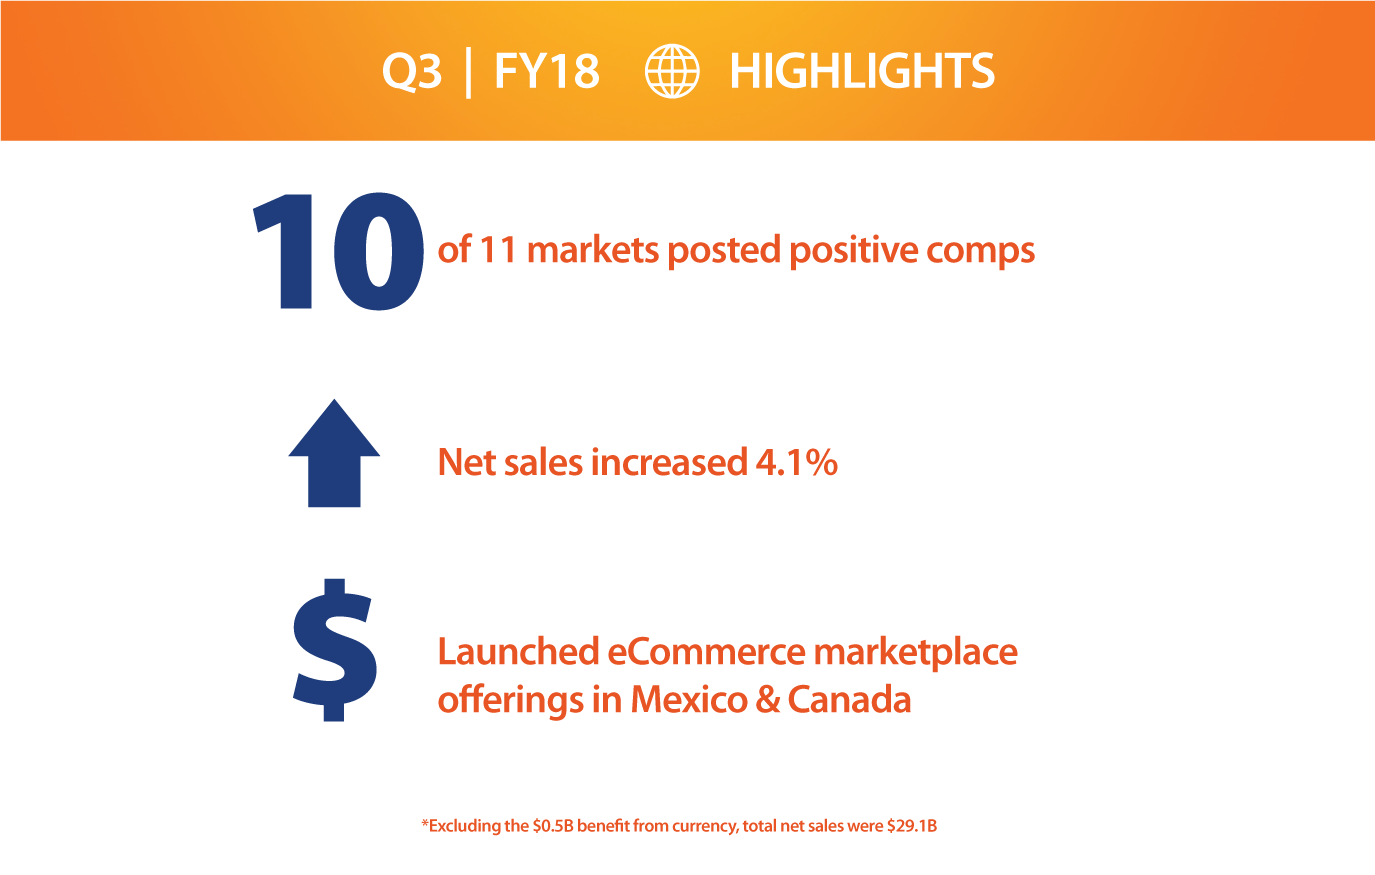 International - FY18 Q3 Highlights